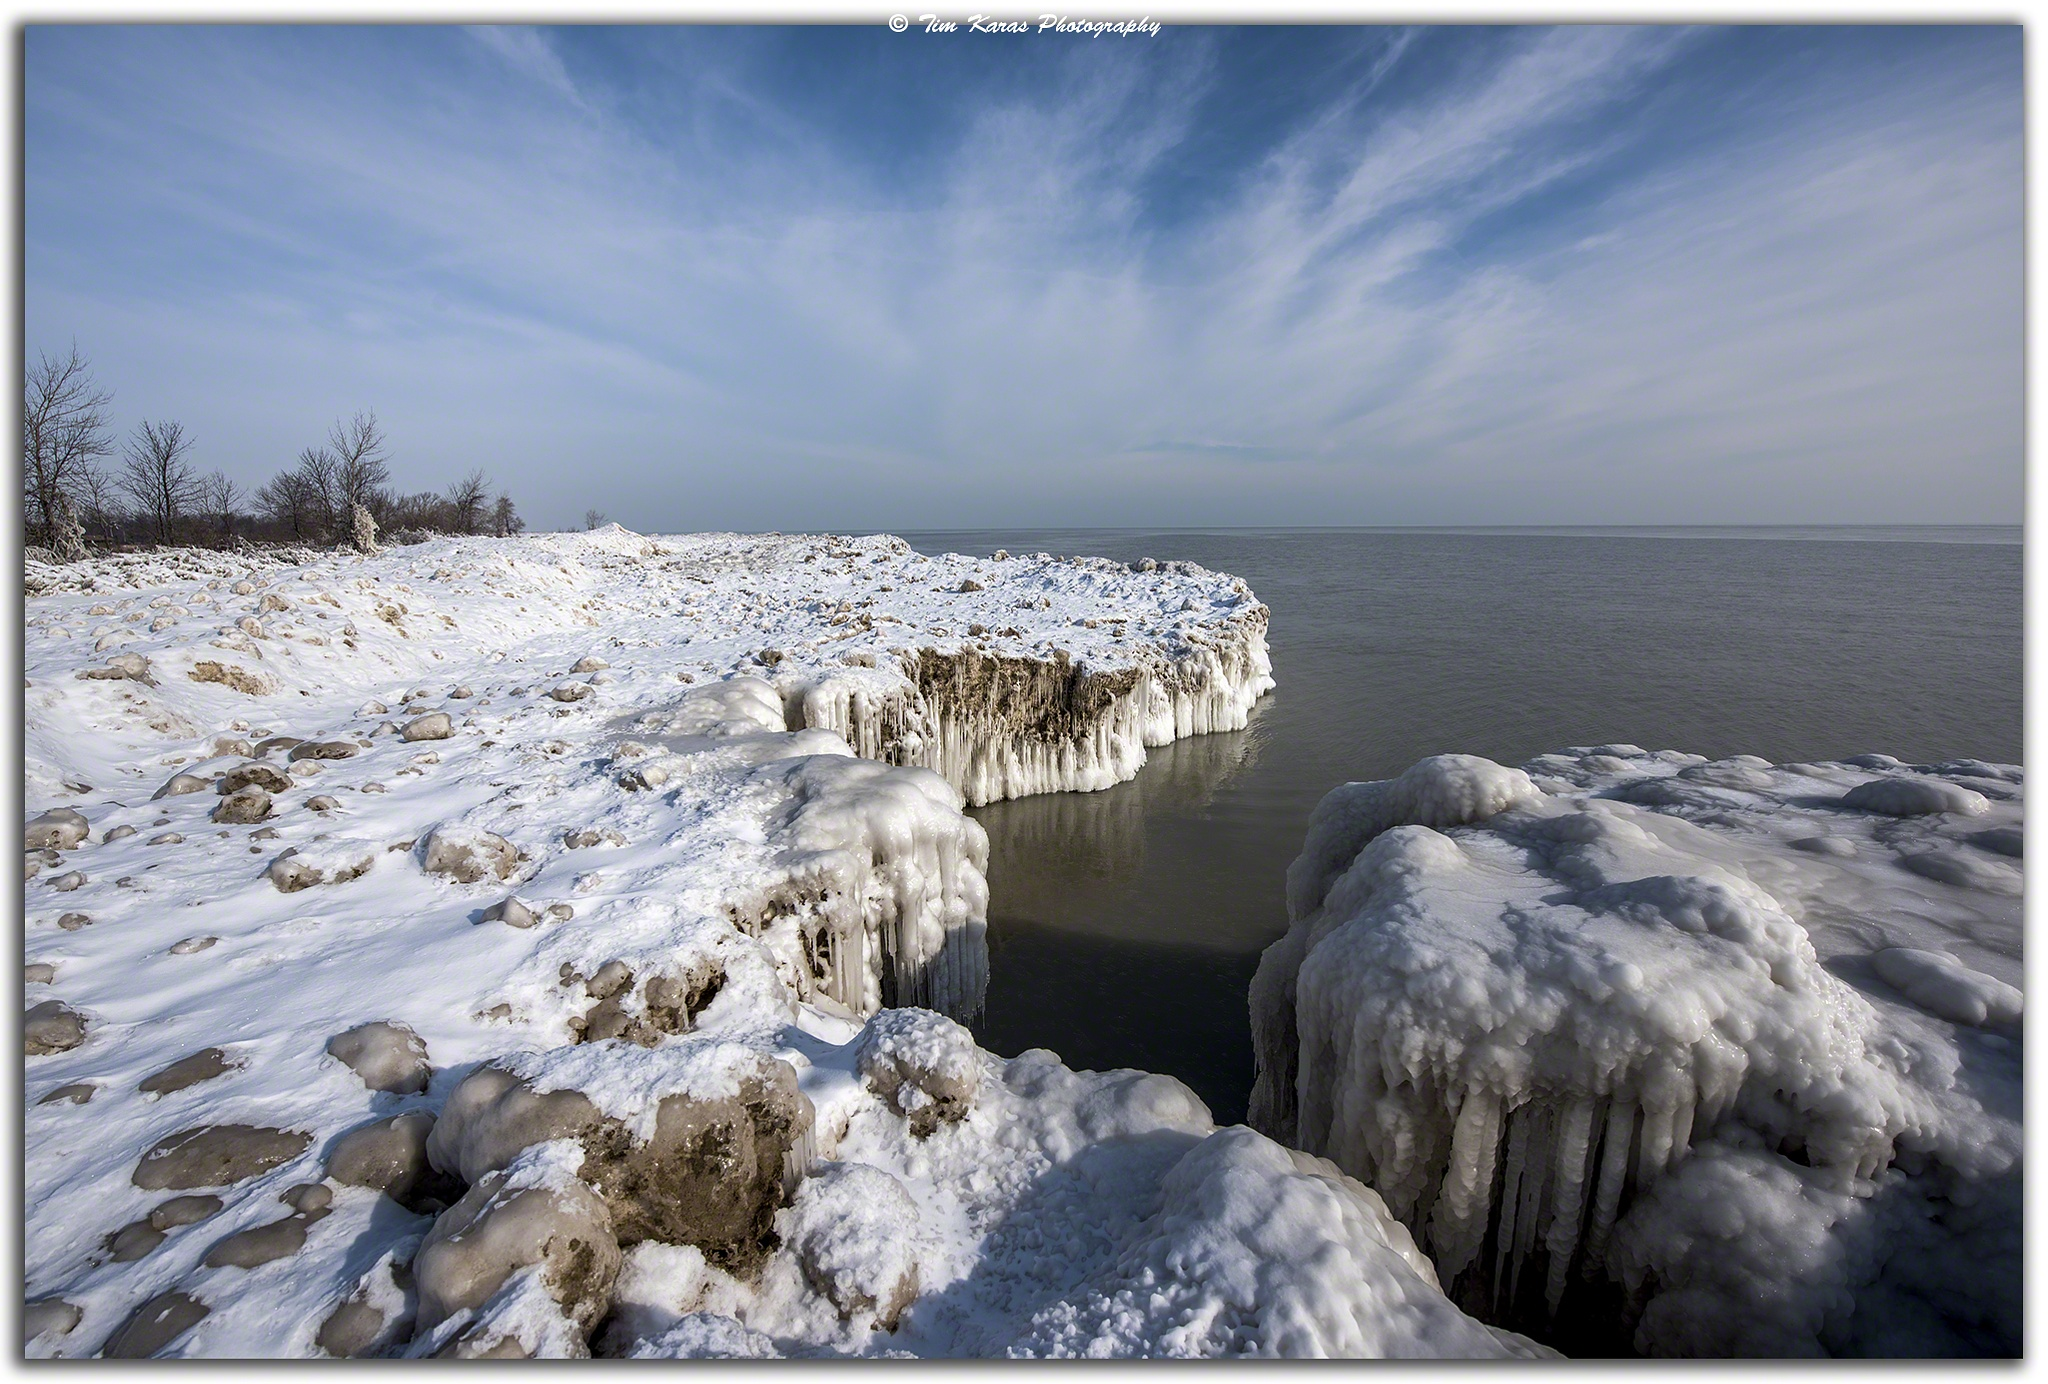 Frozen Beach by Tim Karas